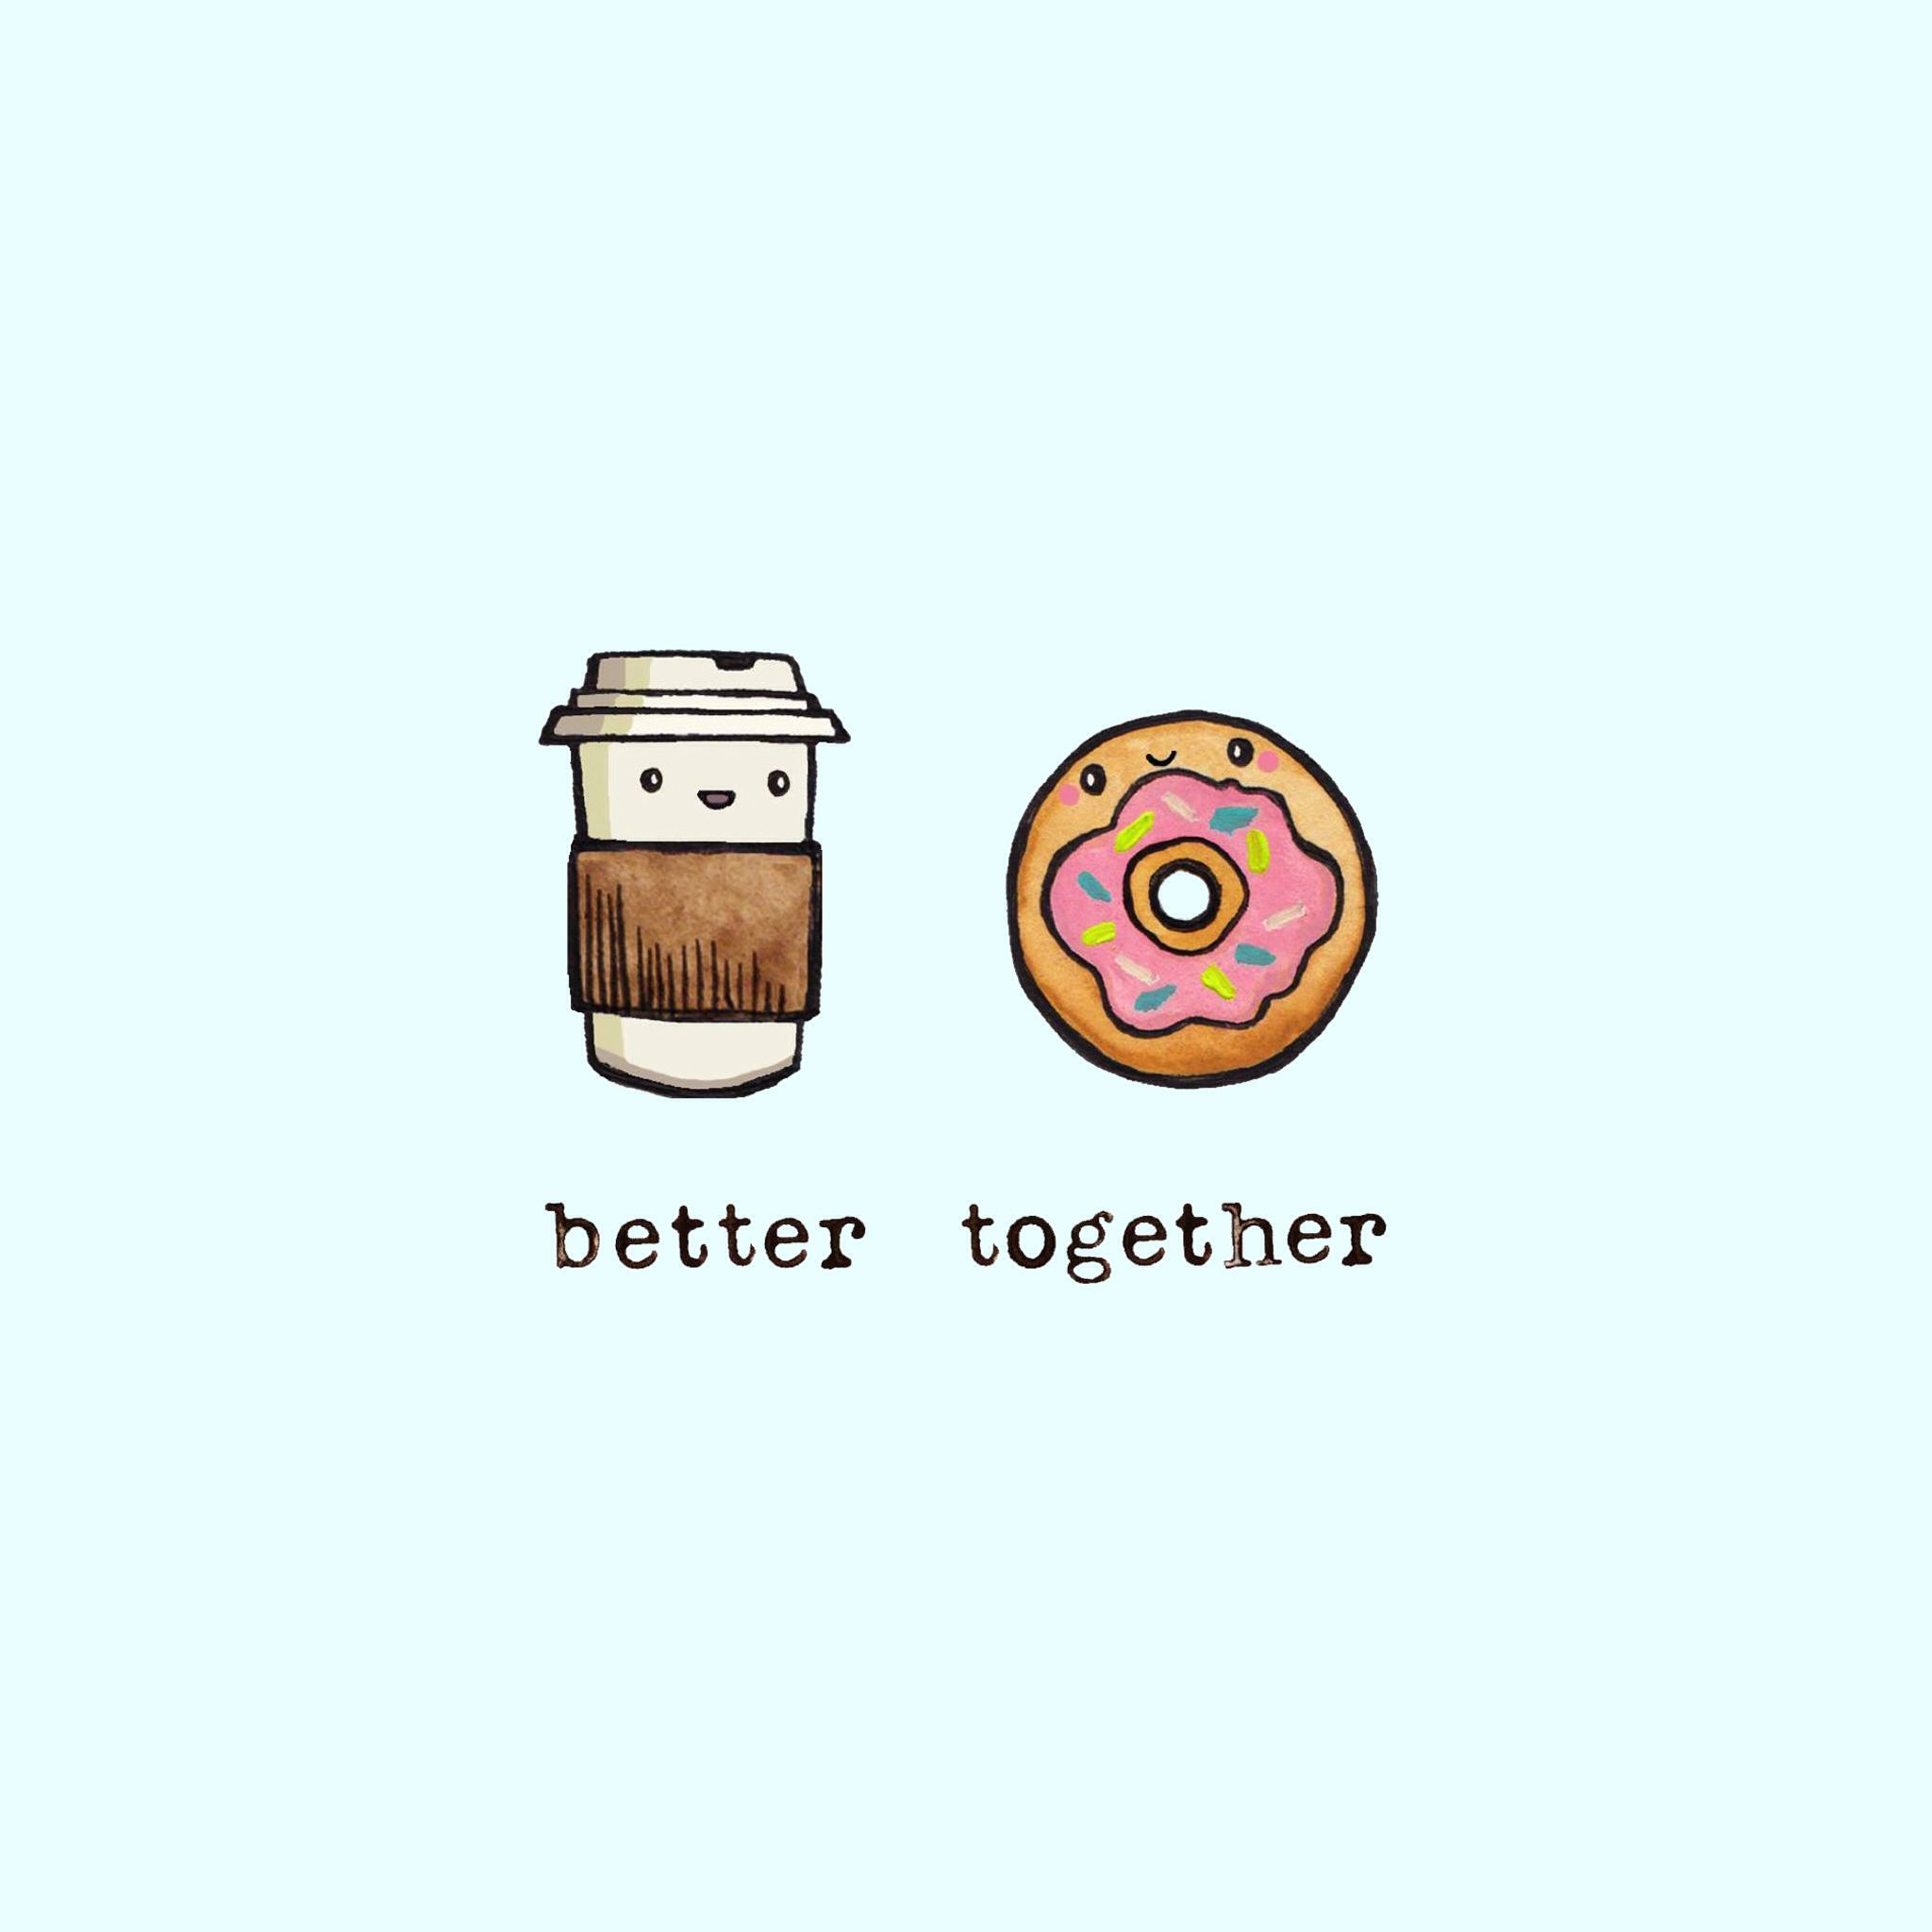 Downloaded From Girly Wallpapers Http Itunes Apple Com App Id1108375300 Thousands Of Hd Girly Wall Better Together Best Friend Wallpaper Cute Food Drawings